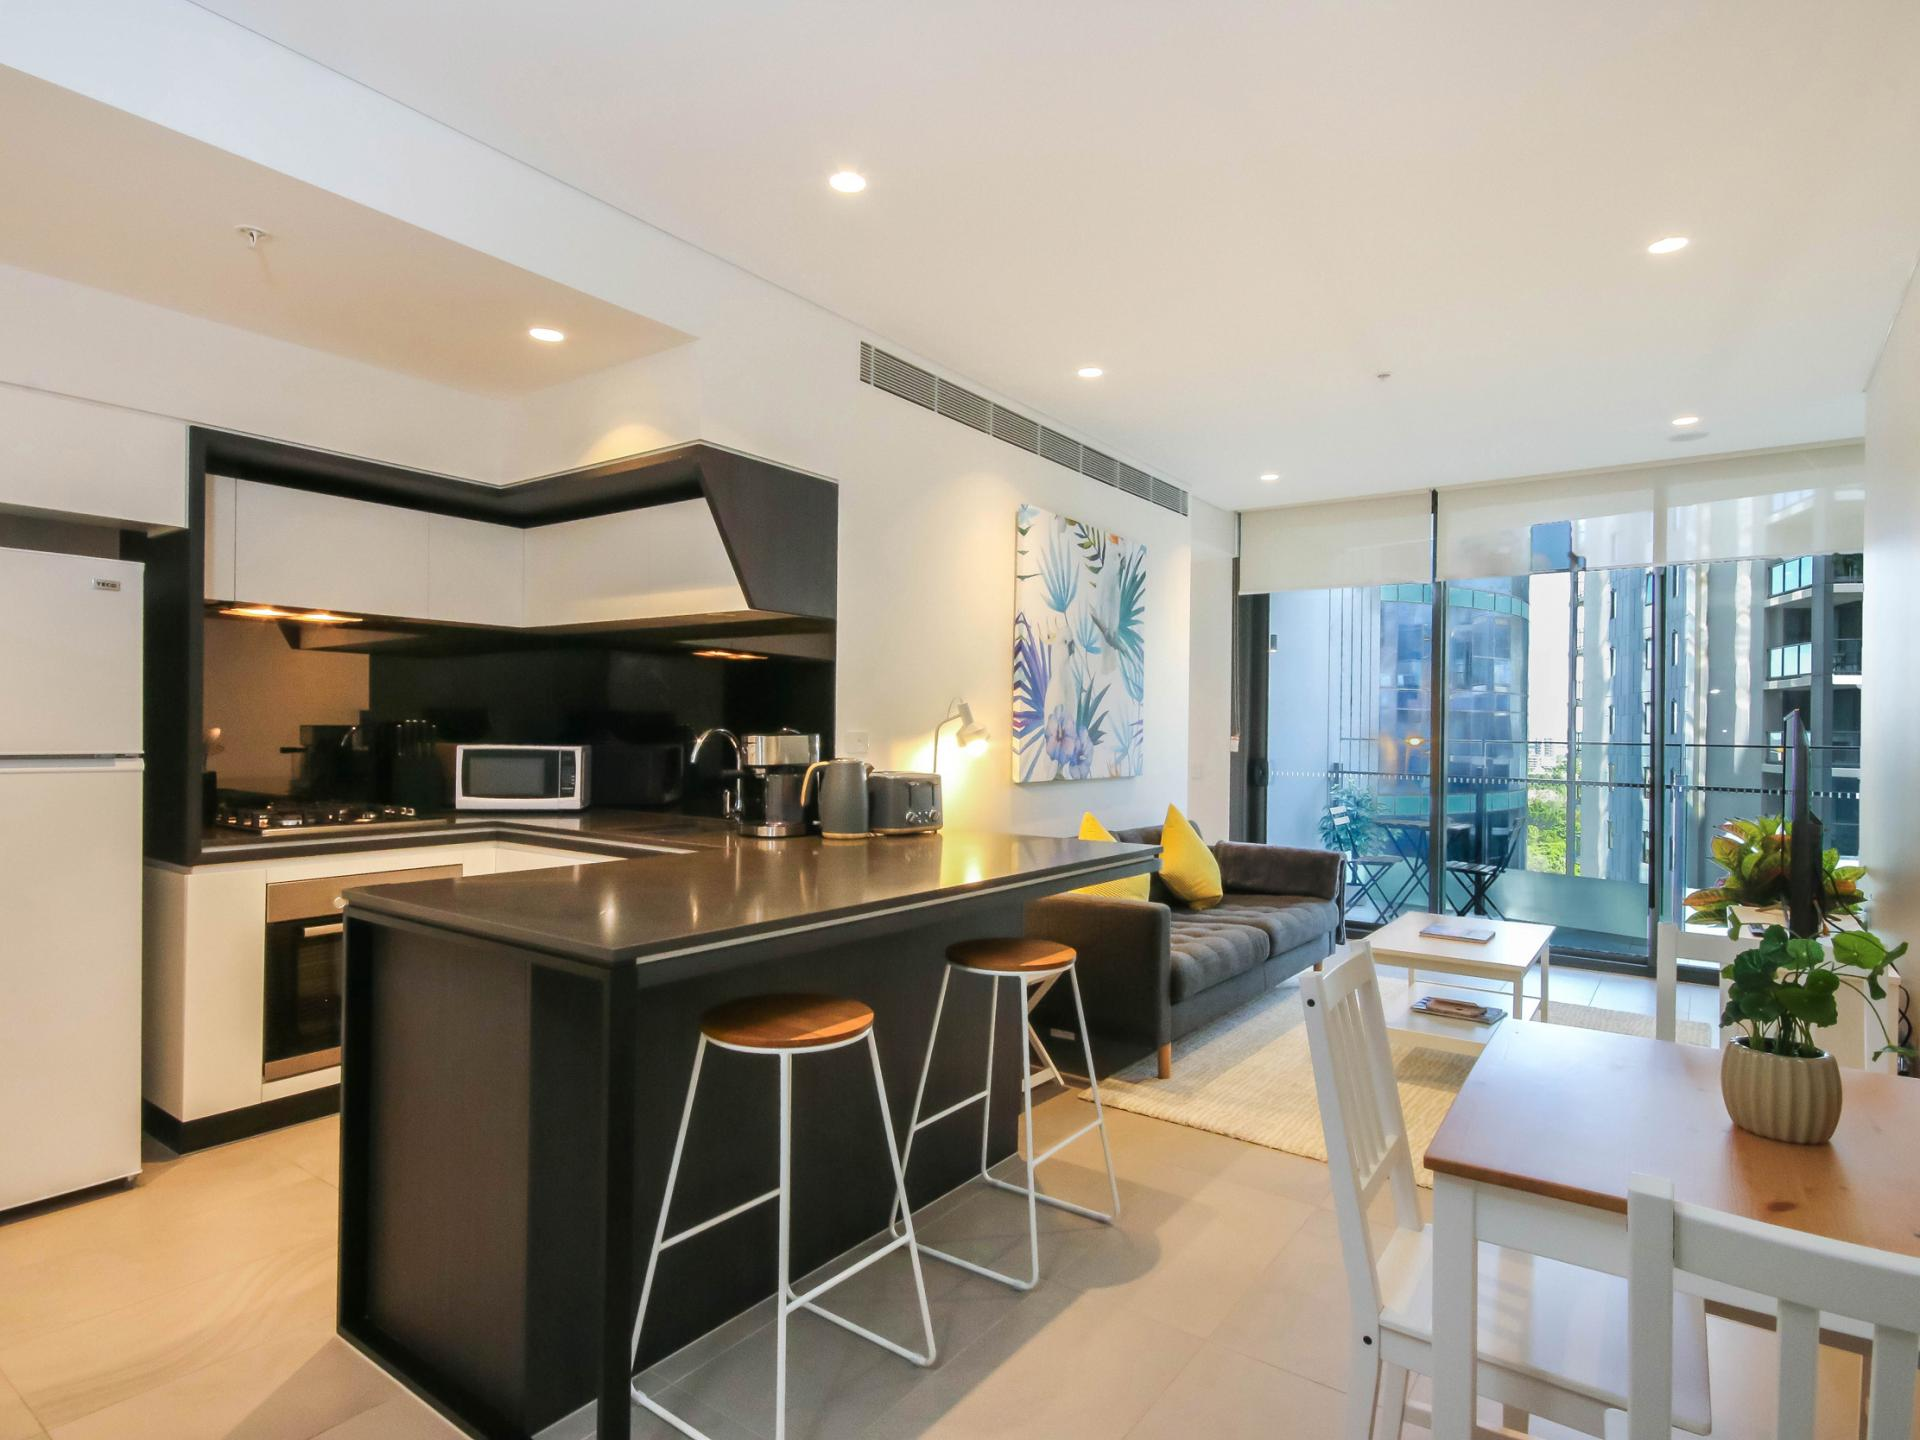 Kitchen at The Mary Street Apartment, Frog's Hollow, Brisbane